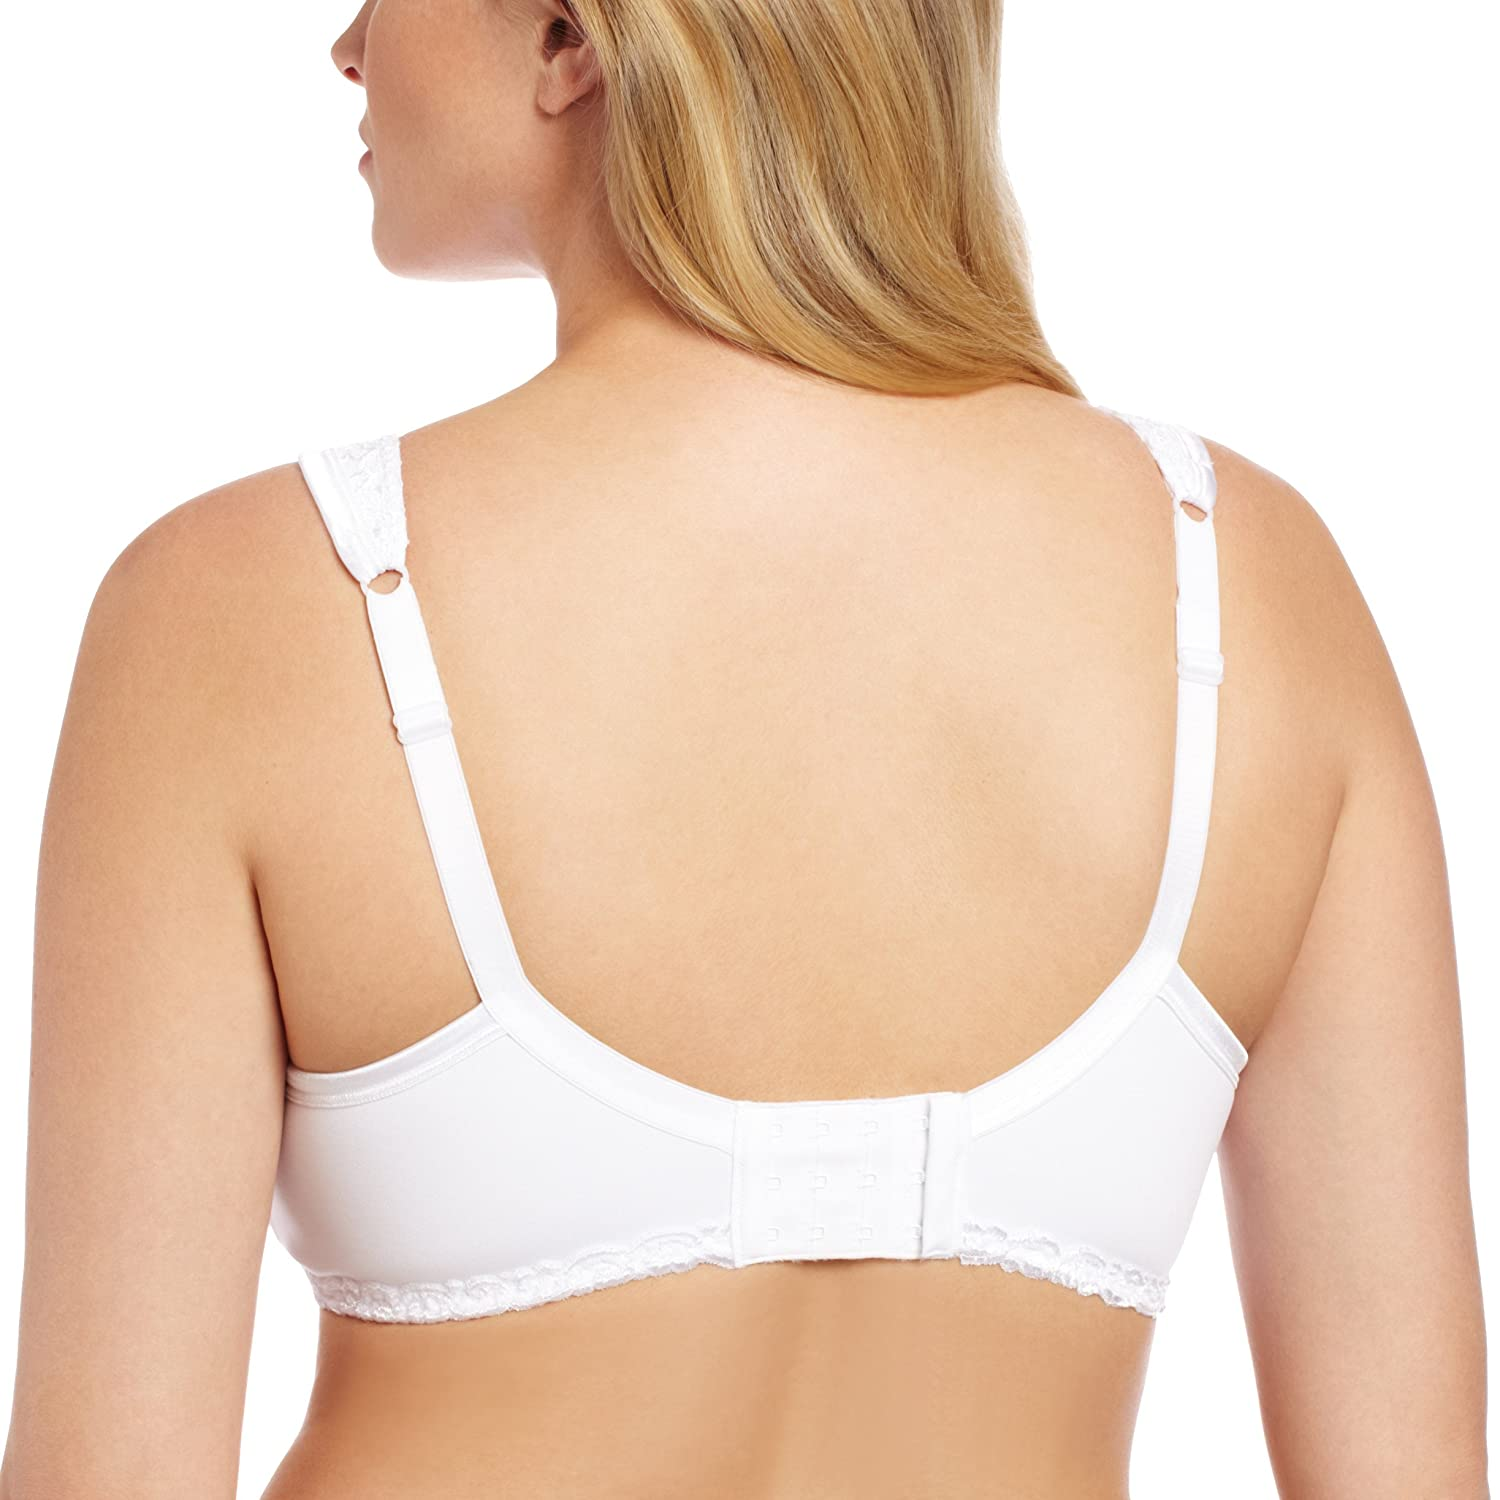 Playtex Womens Plus Size Comfort Lace Wire-Free Bra